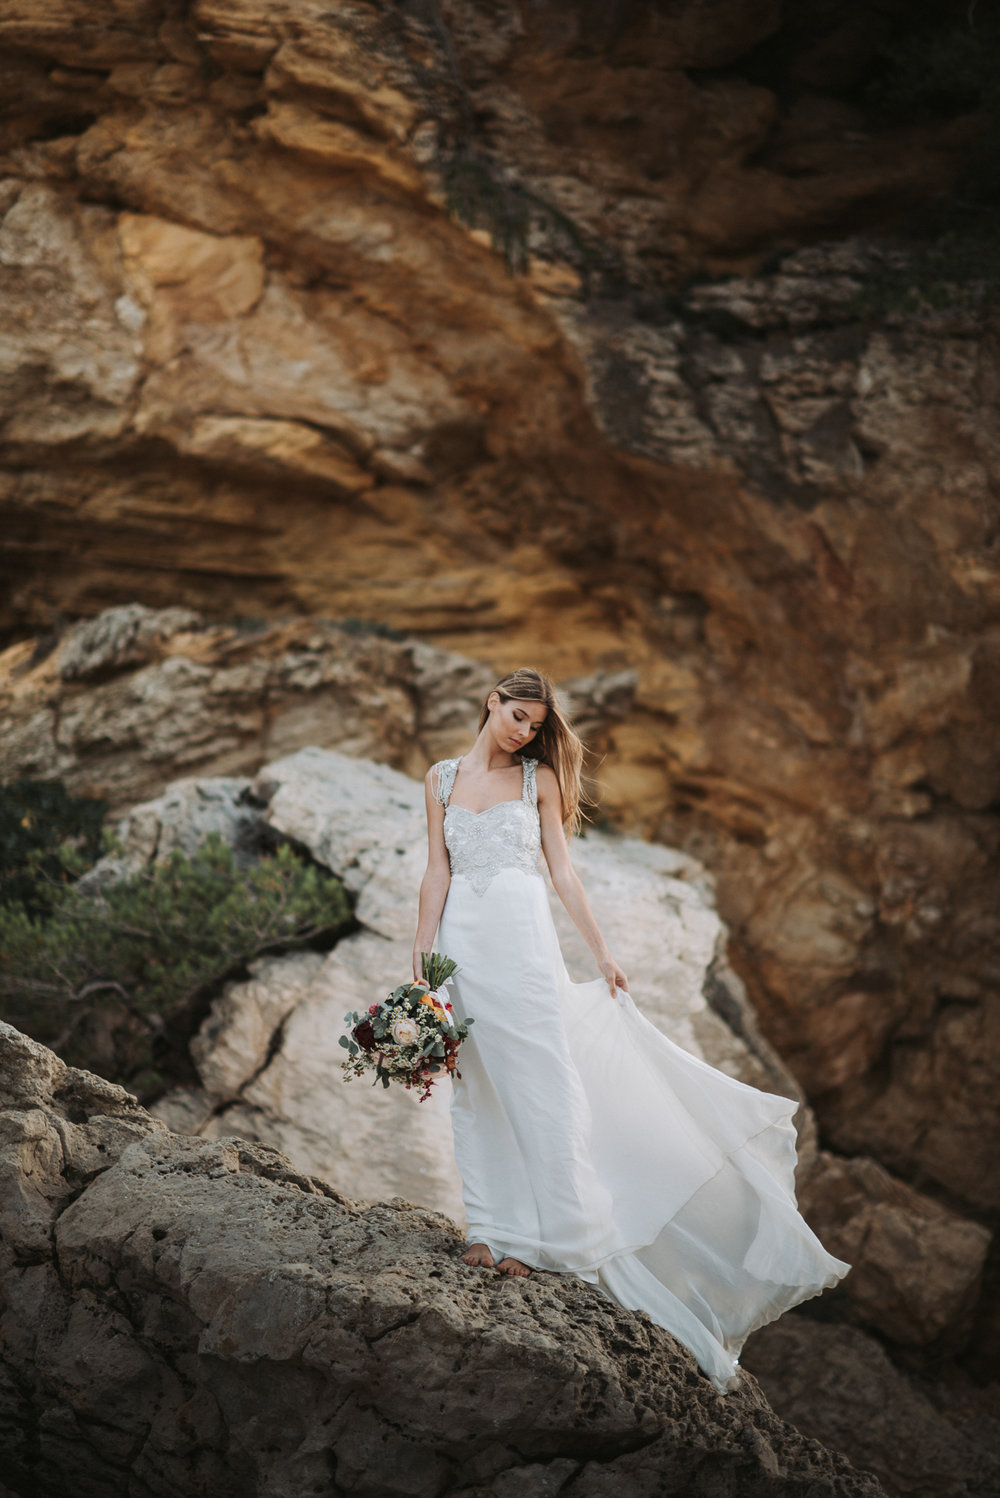 LOVELENSCAPES WEDDING PHOTOGRAPHER • AUSTRALIA • COSTA BRAVA • ANNA CAMPBELL BRIDAL MELBOURNE • CHLOÉ GOWN • MARIE MARRY ME • LAURA BRUNET • PALS • SPAIN • BRIDAL EDITORIAL •  29.jpg